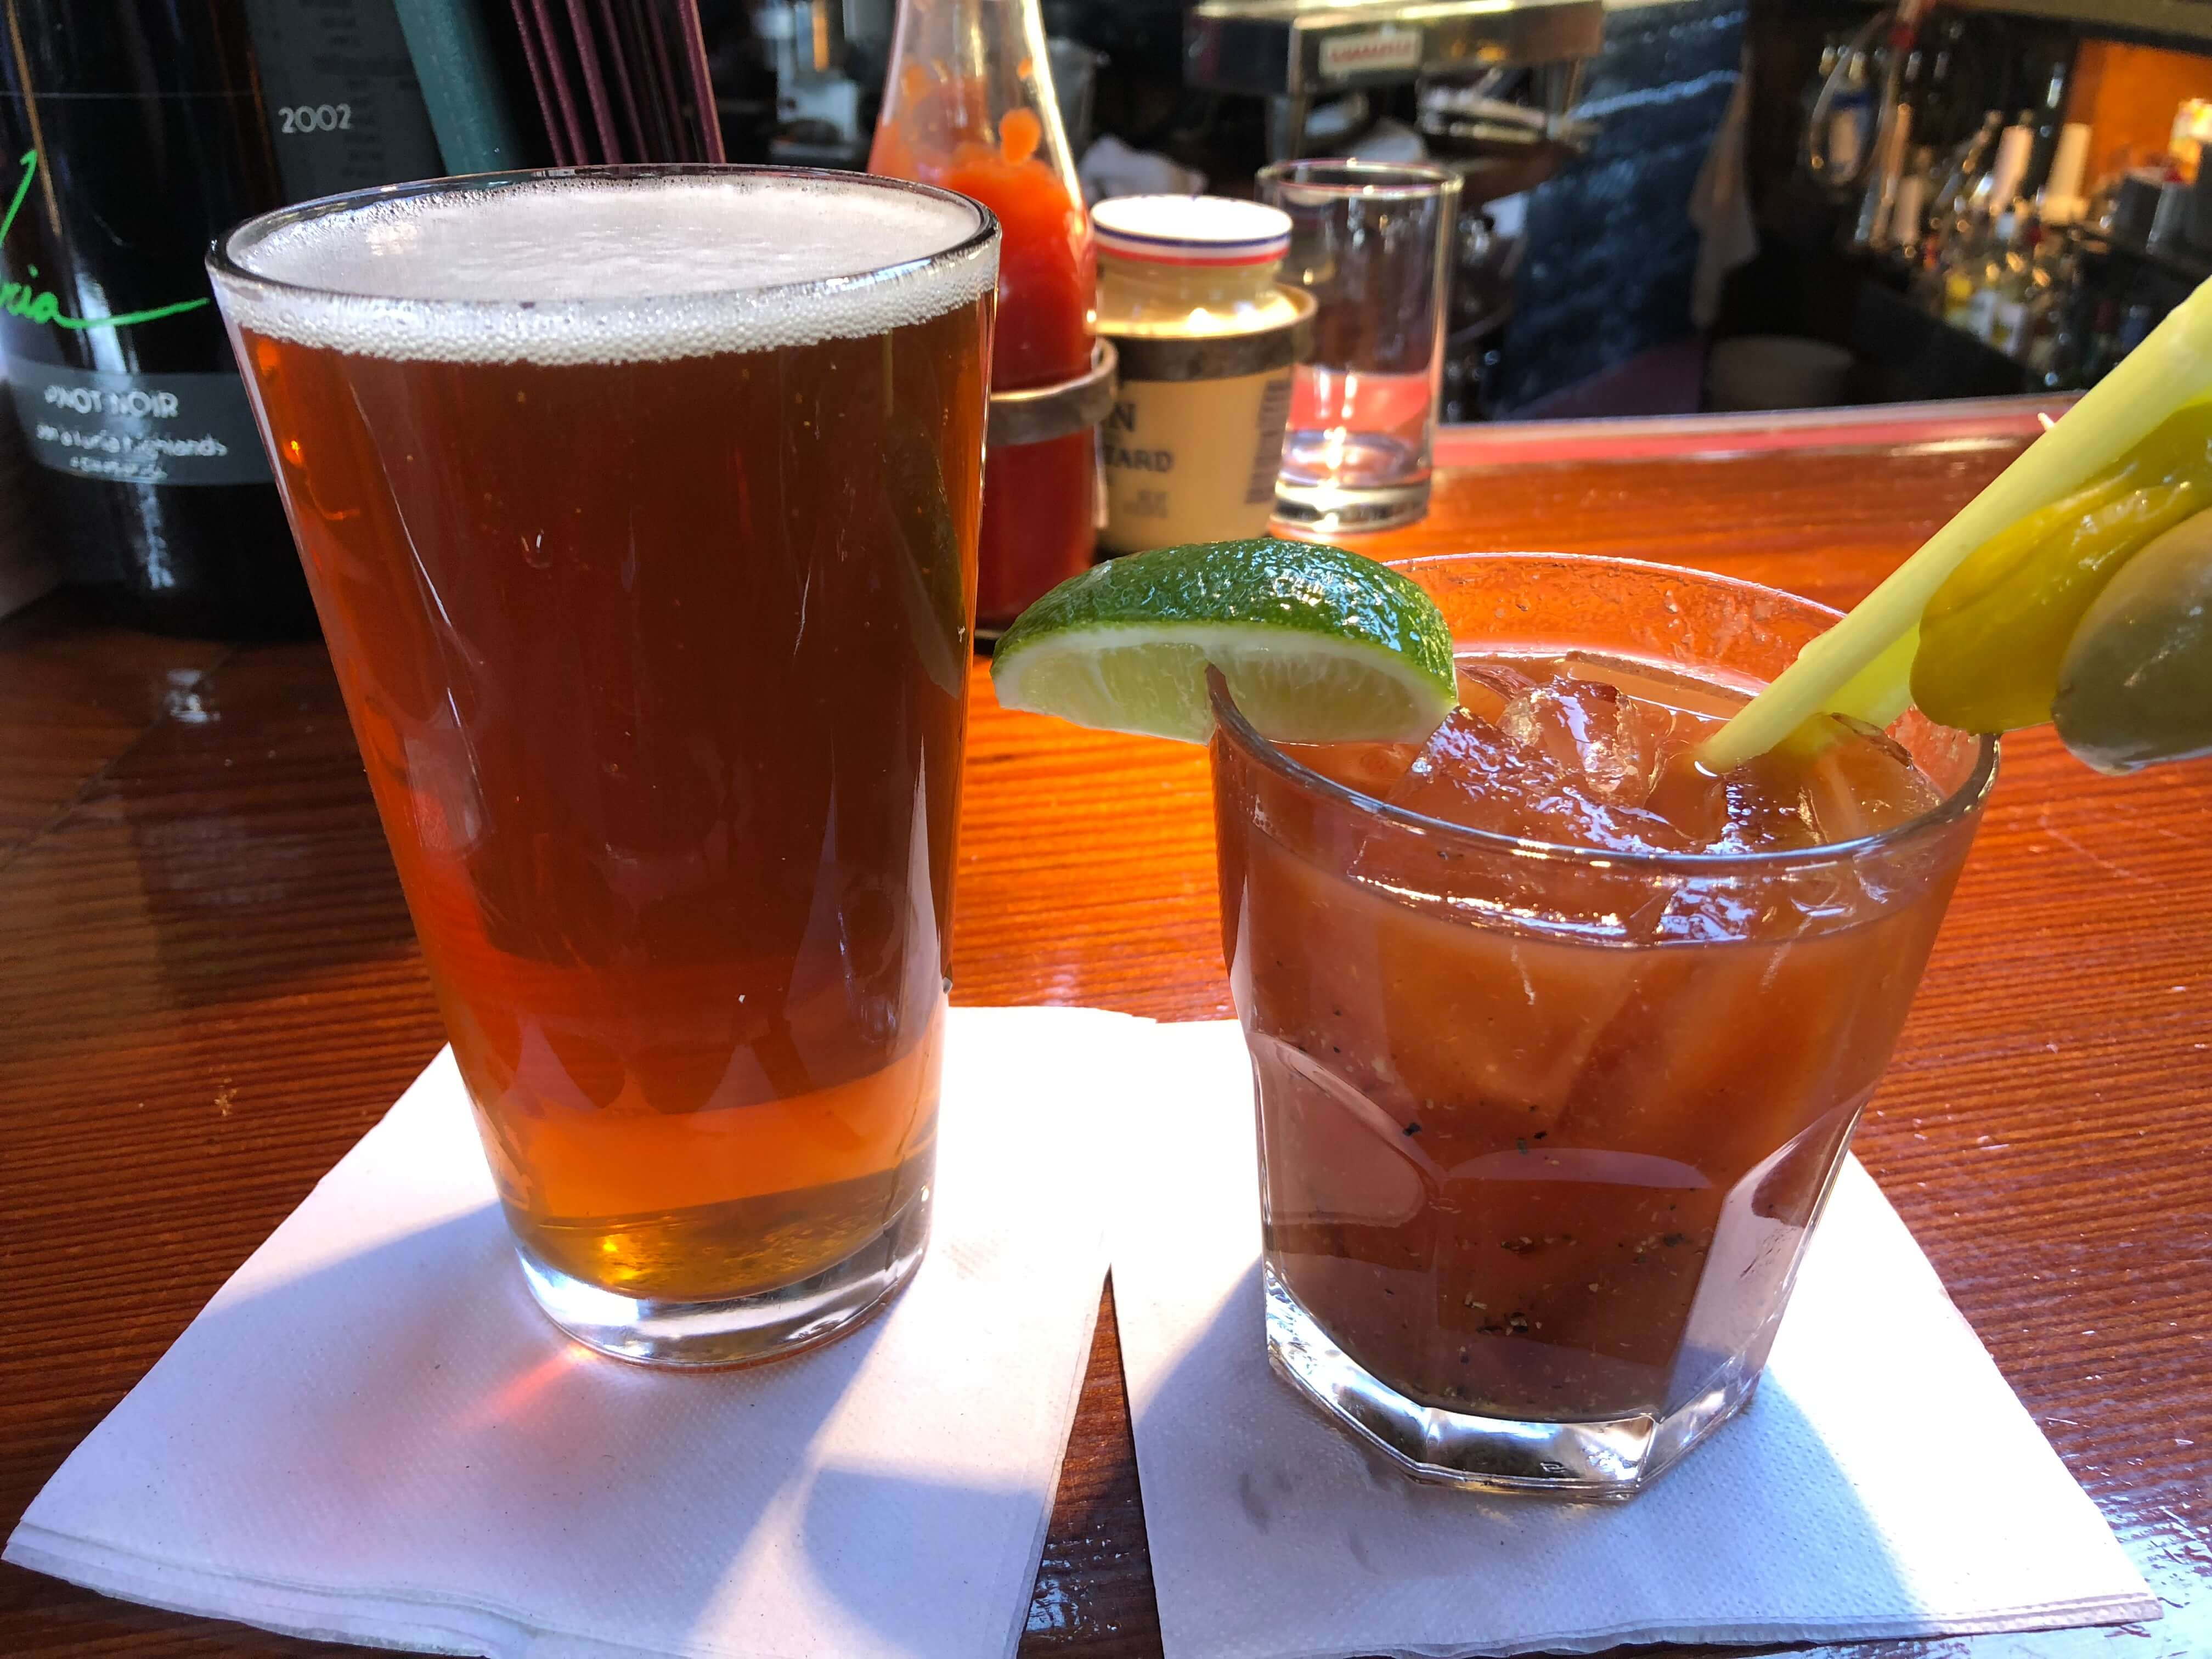 Highway 1 to drive to Nepenthe/Phoenix/Cafe Kevah big sur with drinks